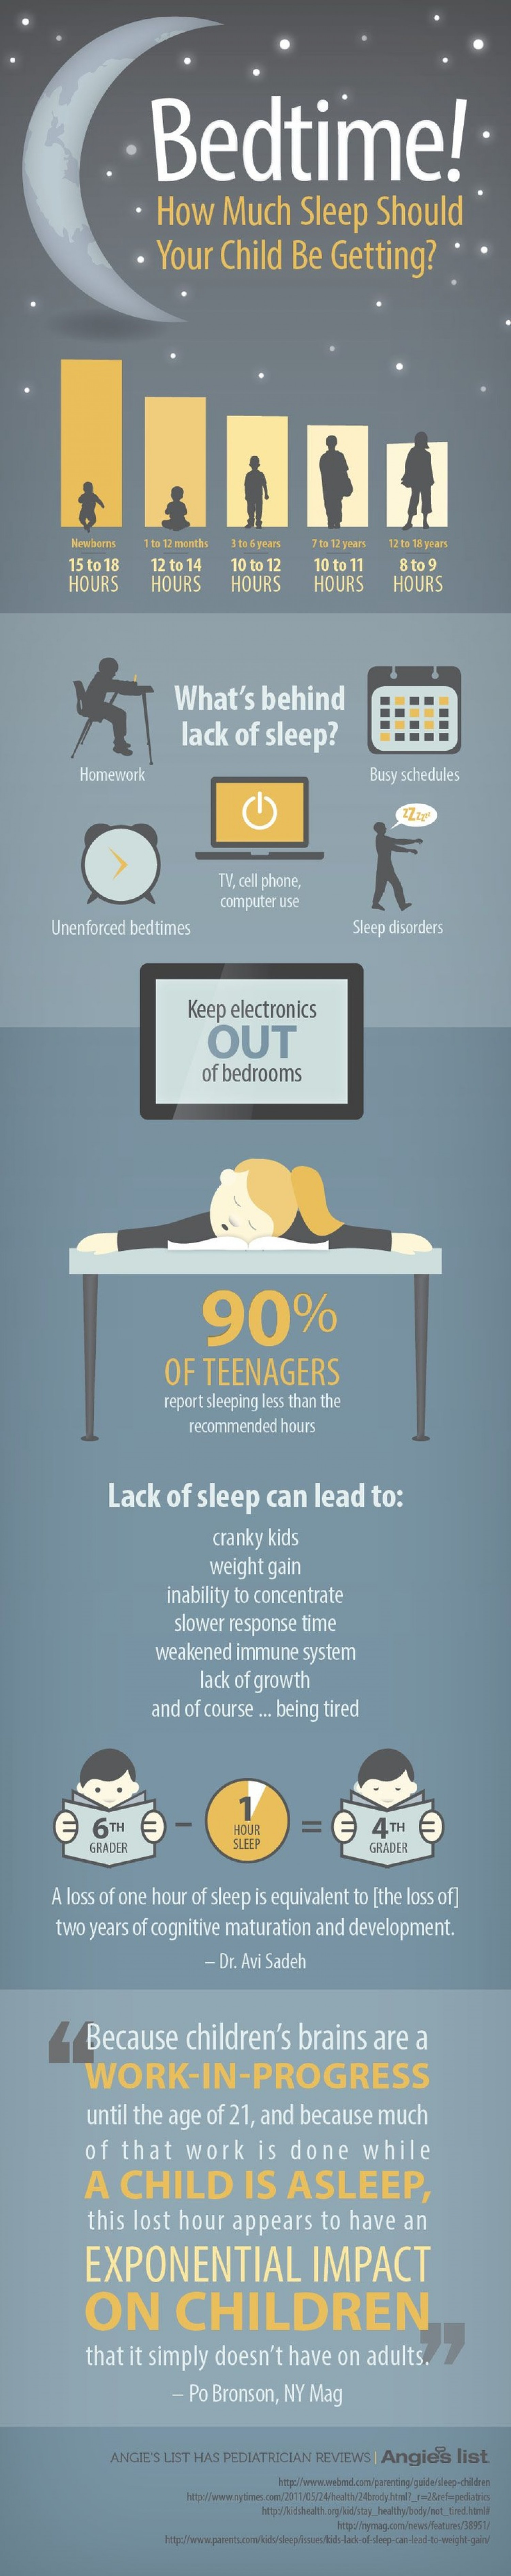 Bedtime! Infographic